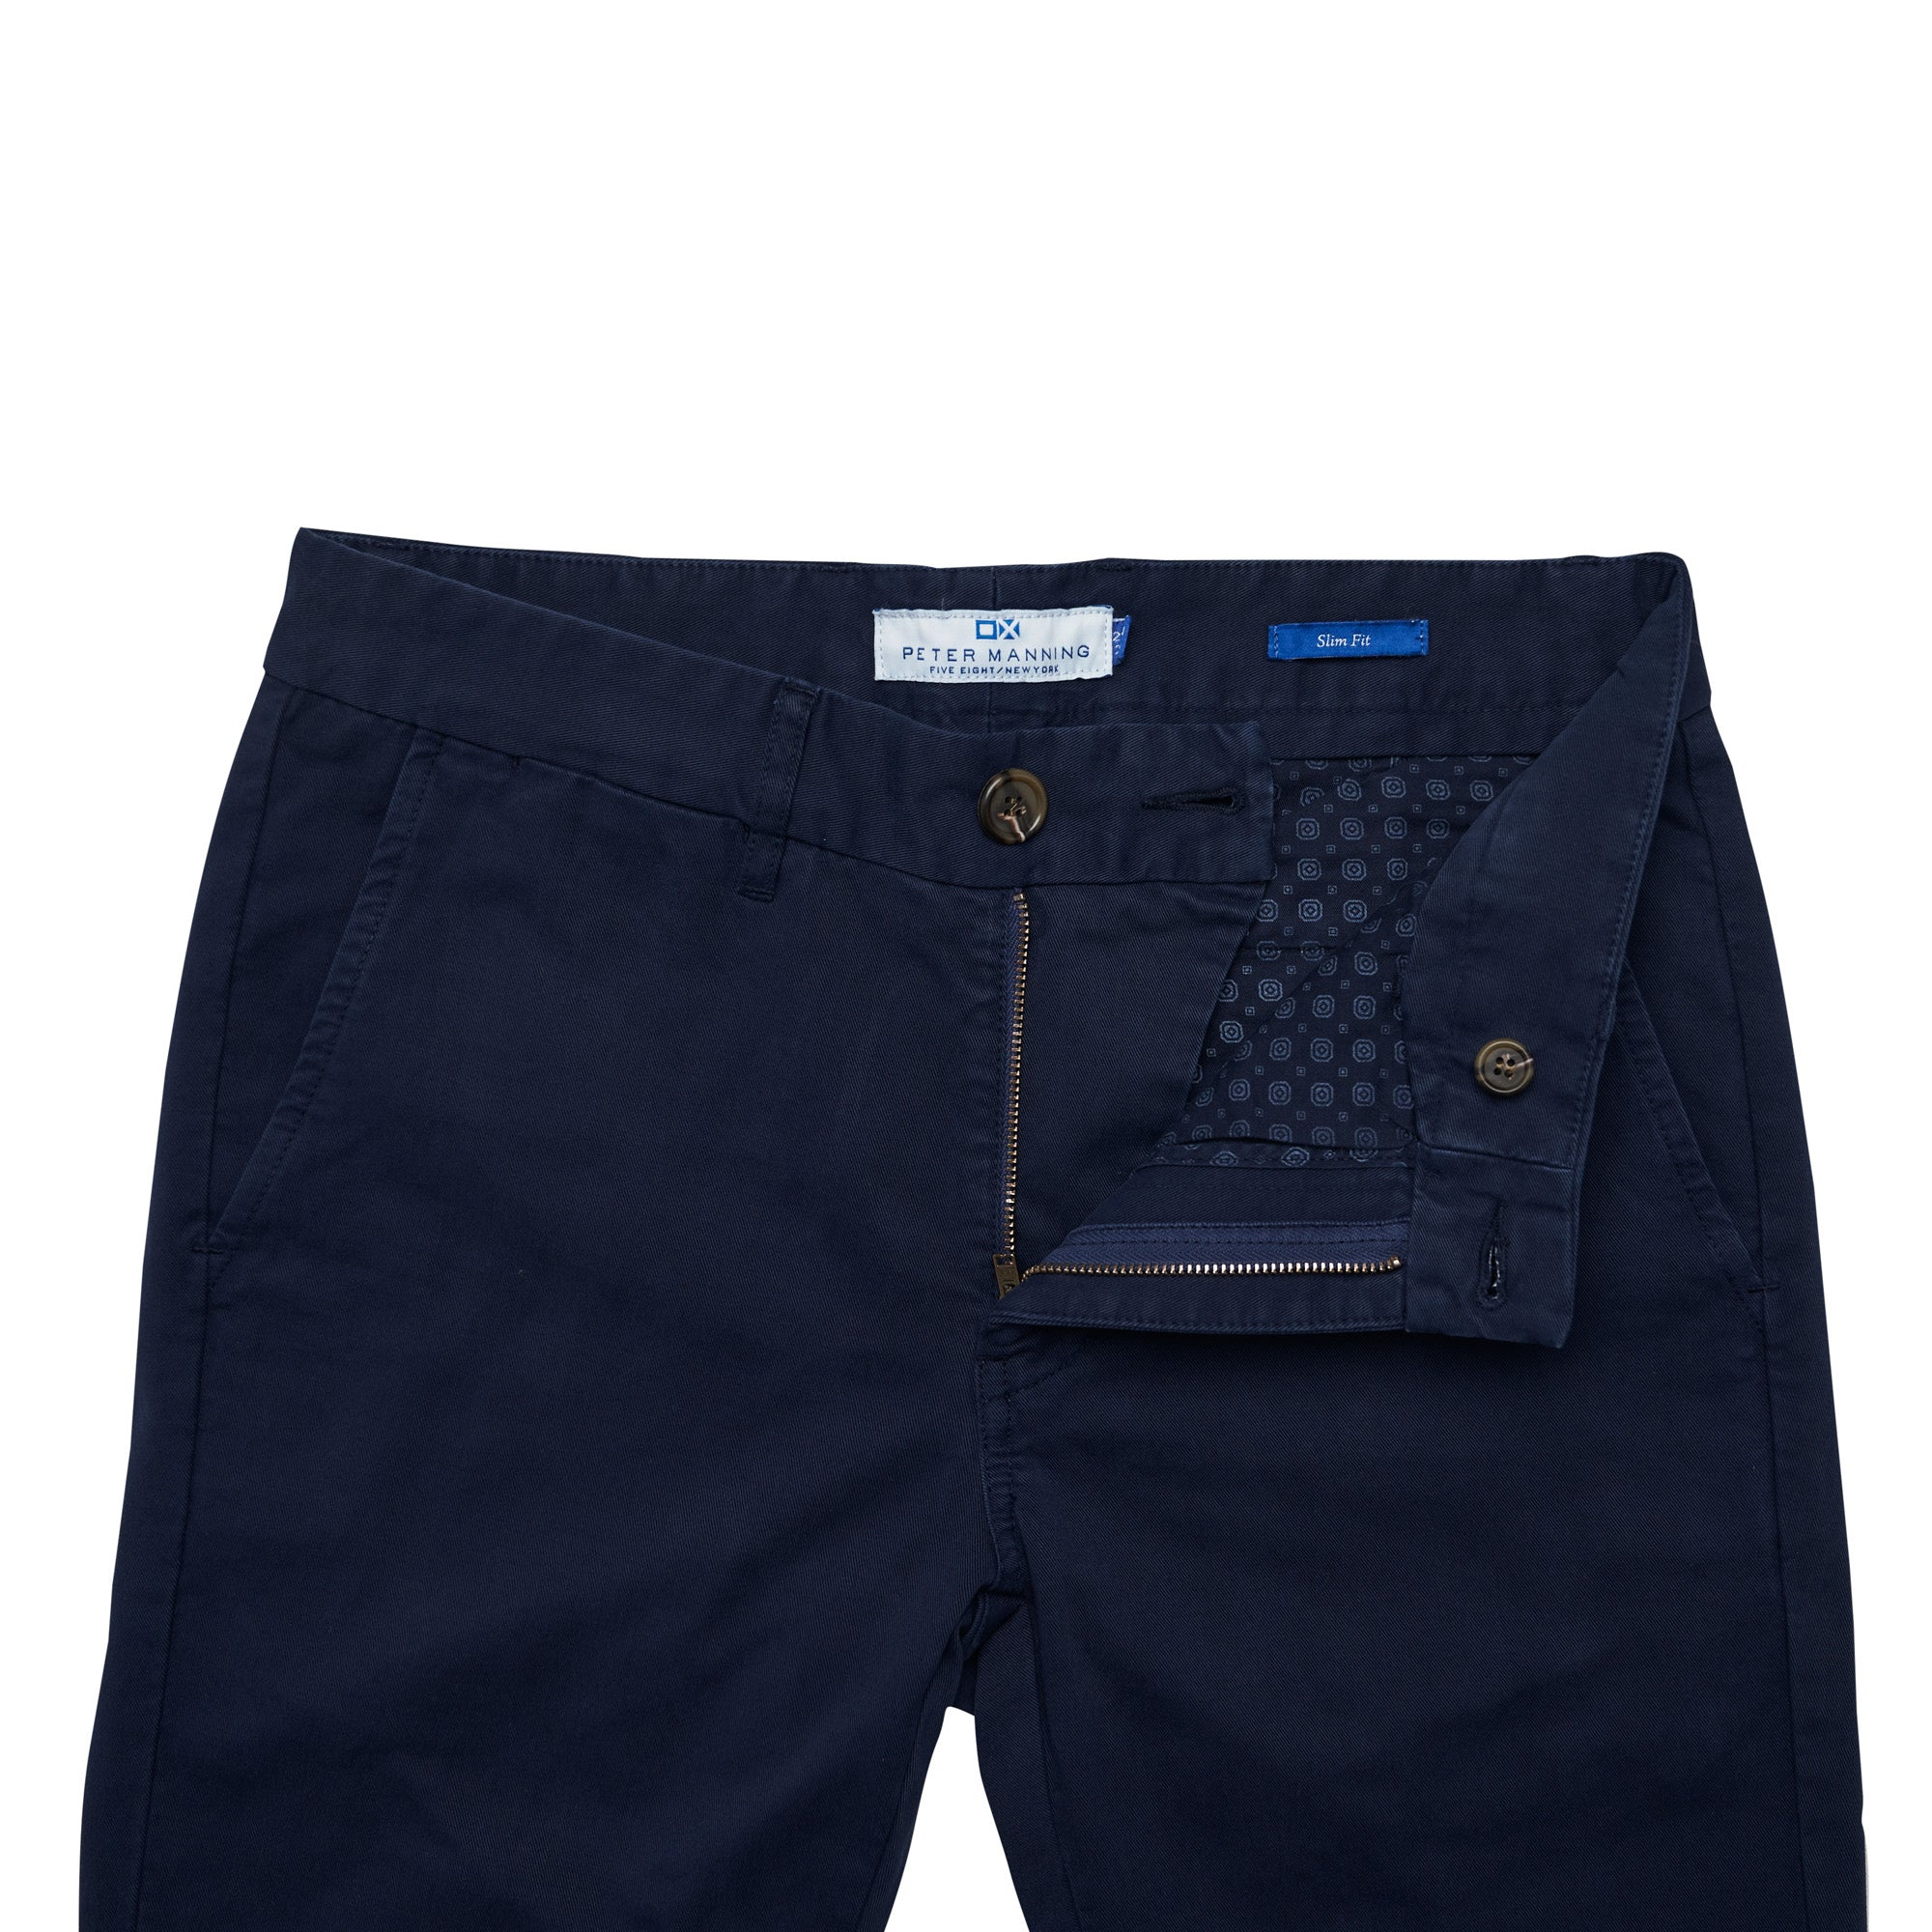 Slim Fit Chinos - Navy